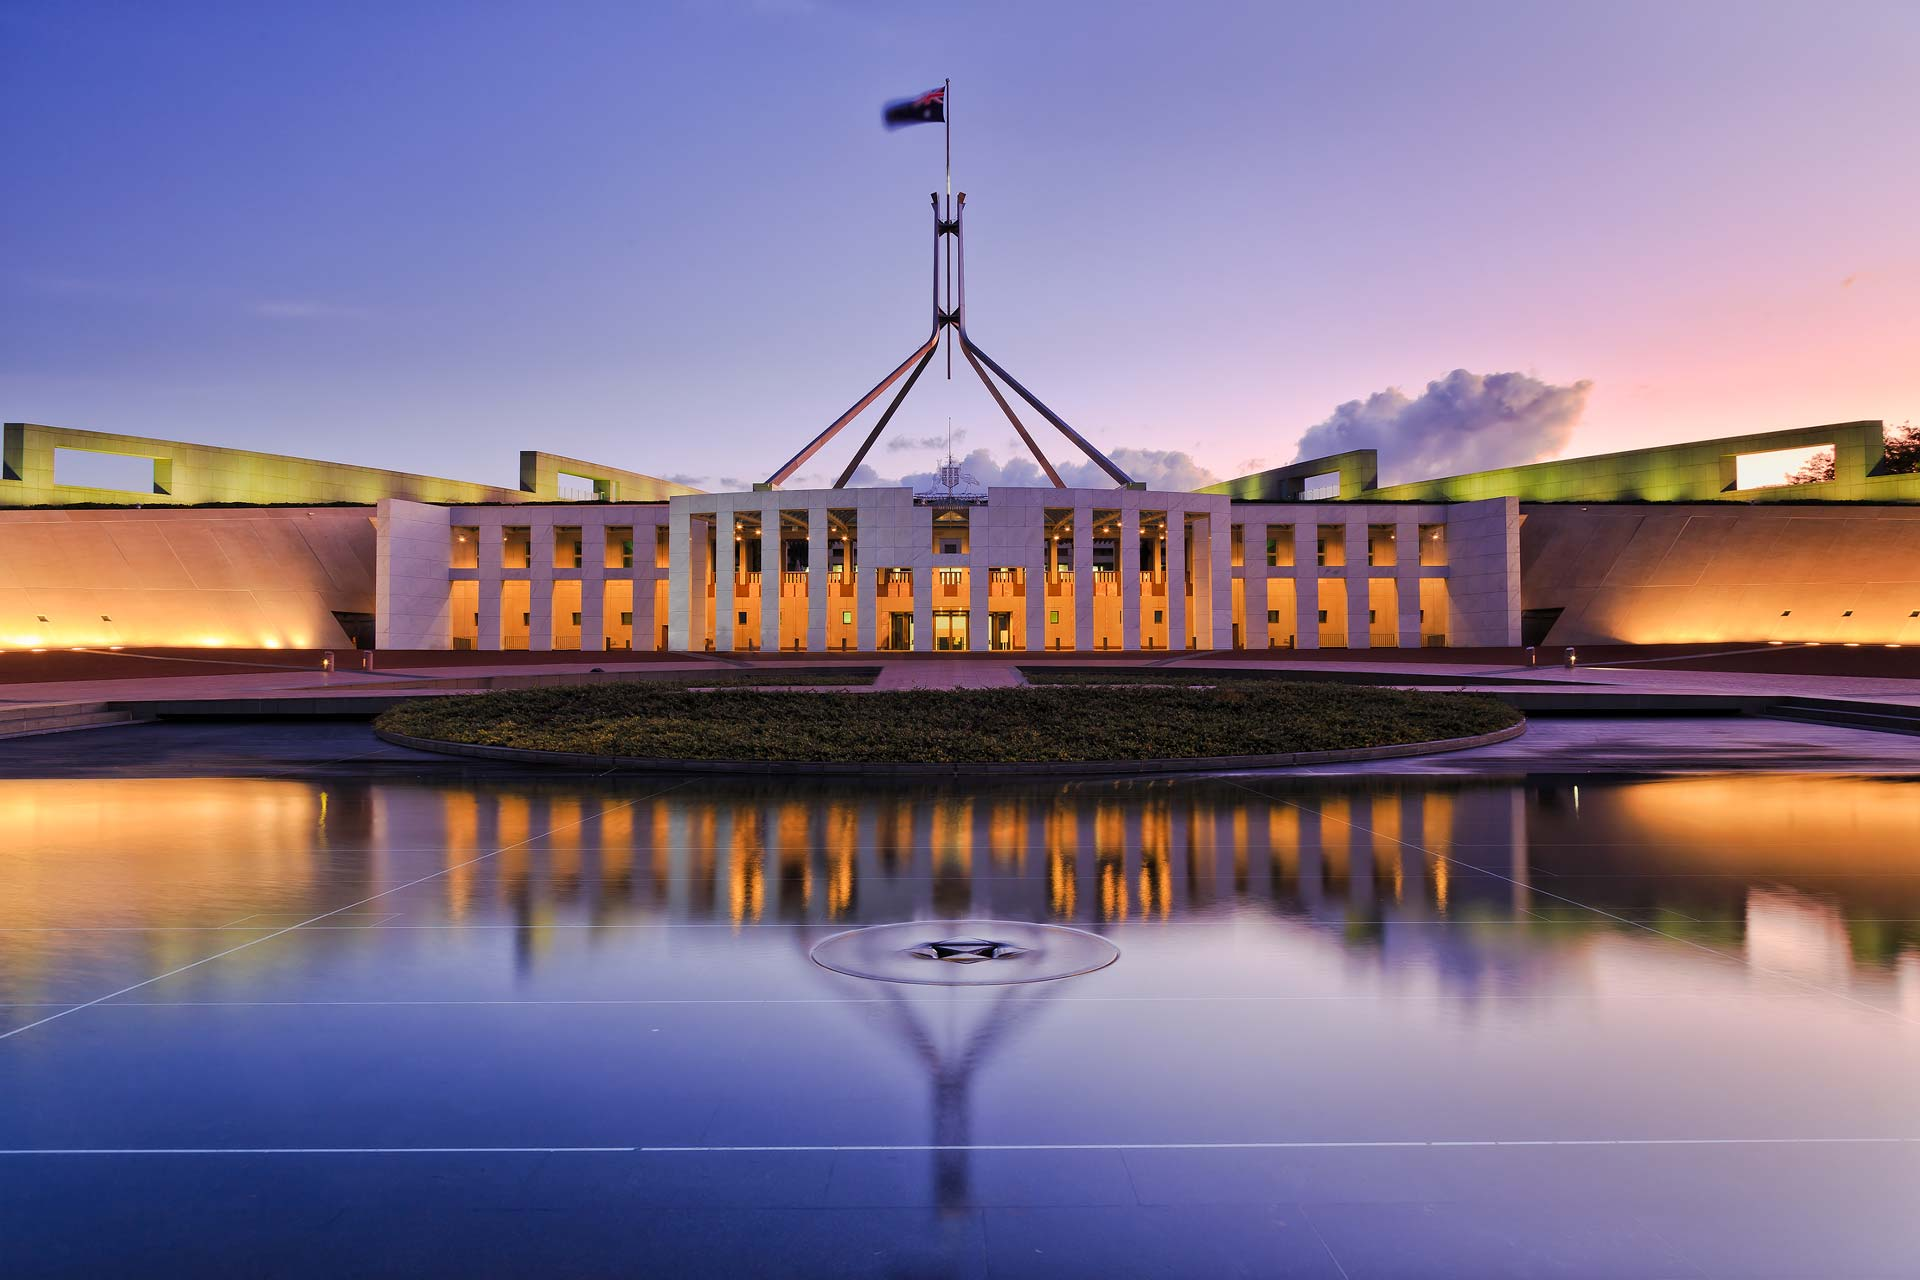 The Australian Federal Parliament House, reflected In a pool